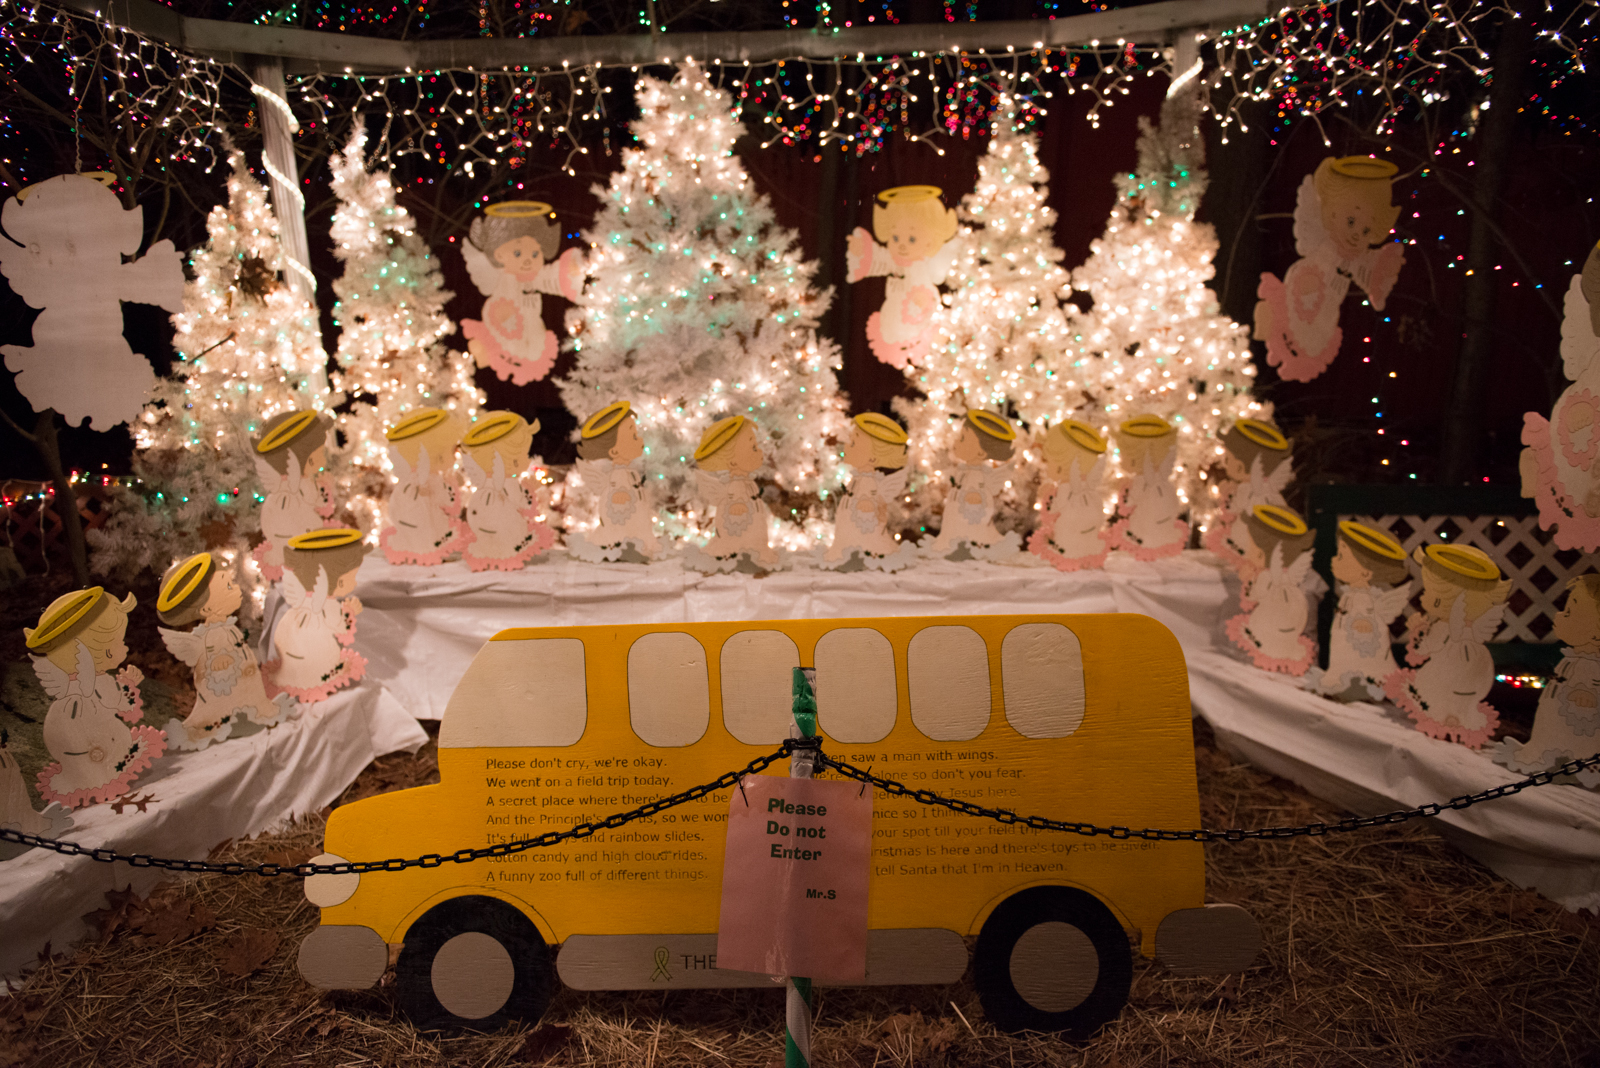 This memorial display was created by the Settis in remembrance of the innocent lives of 20 childrenand 6 adult staff members lost during the tragic Sandy Hook Elementary School shooting on 12/14/12 in Newtown, CT.